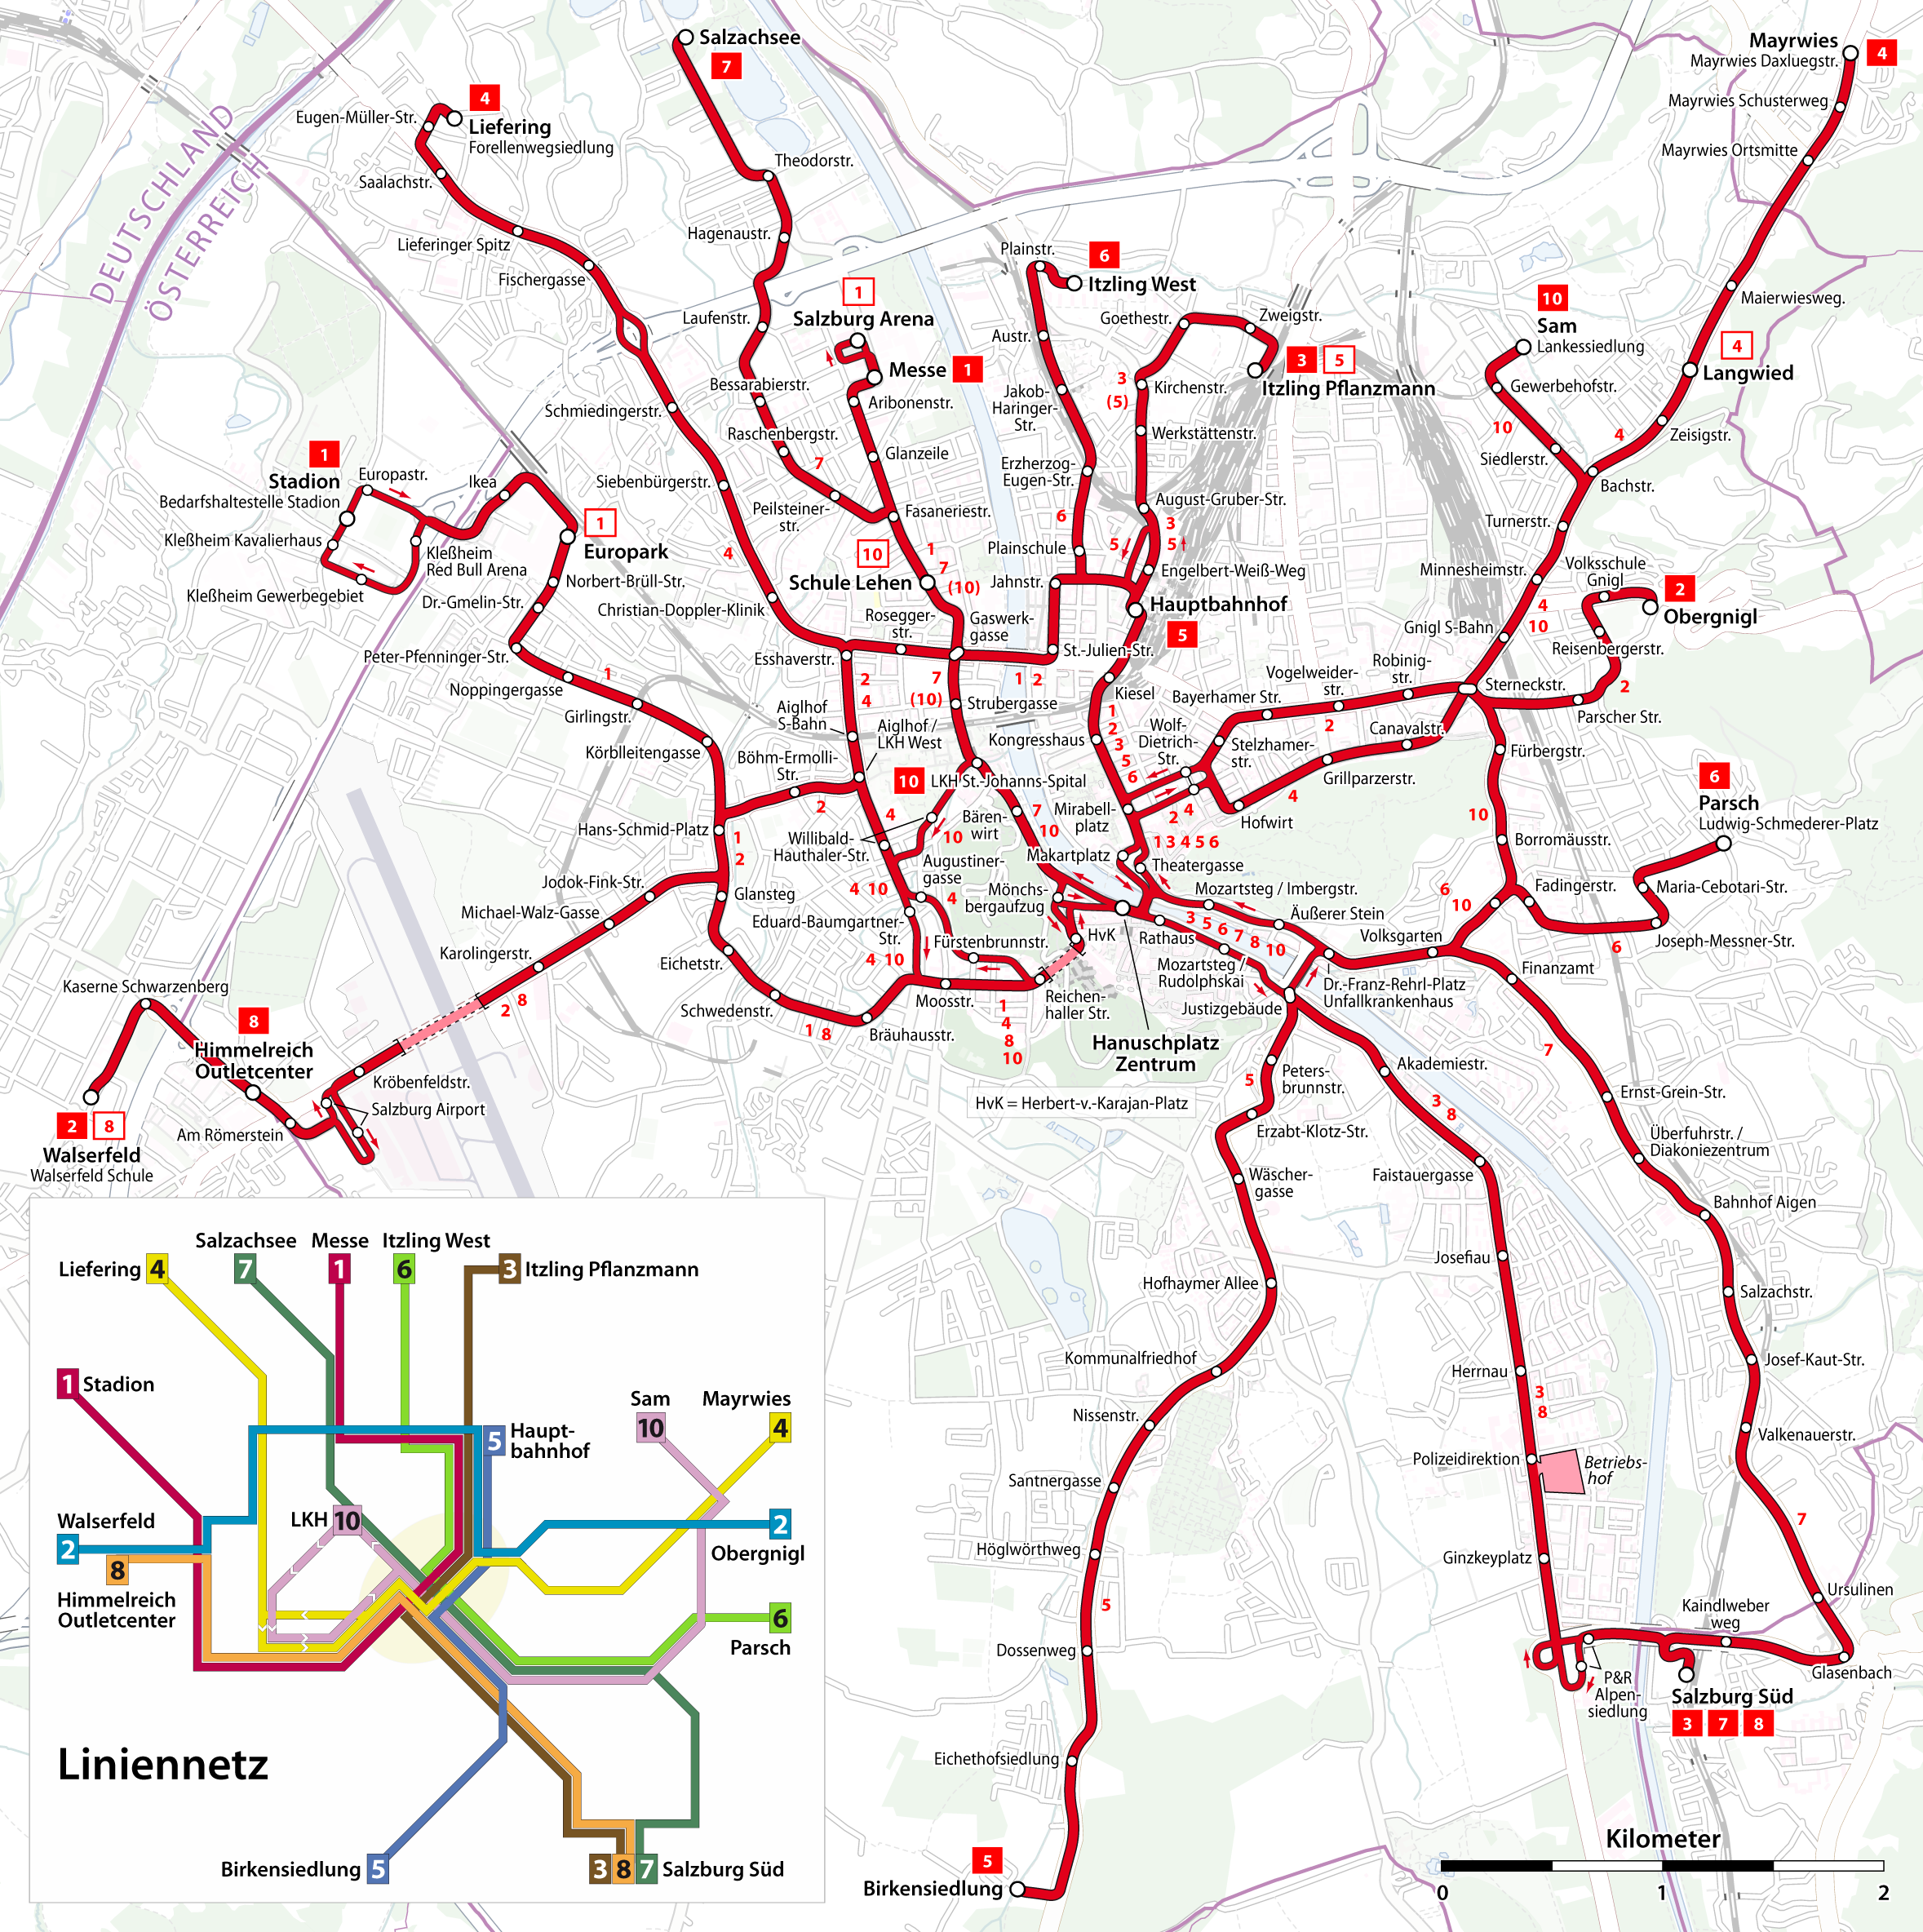 Salzburg trolleybus map salzburg pinterest mappery is a diverse collection of real life maps contributed by map lovers worldwide find and explore maps by keyword location or by browsing a map gumiabroncs Images